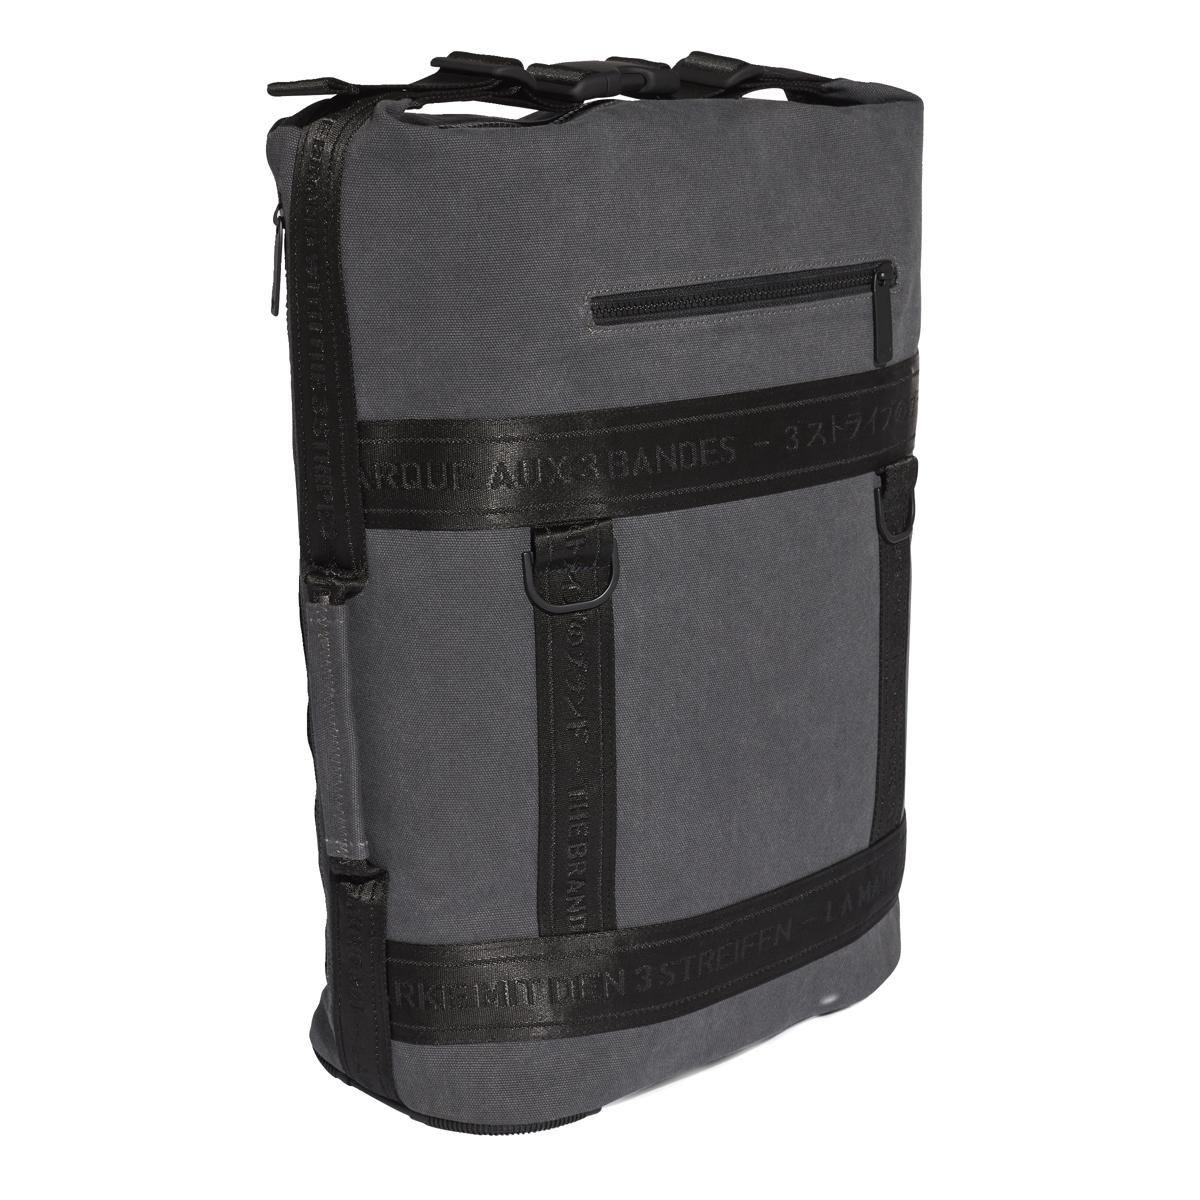 e2c8d042d1ad Adidas - Black Nmd Backpack Night Canvas for Men - Lyst. View fullscreen